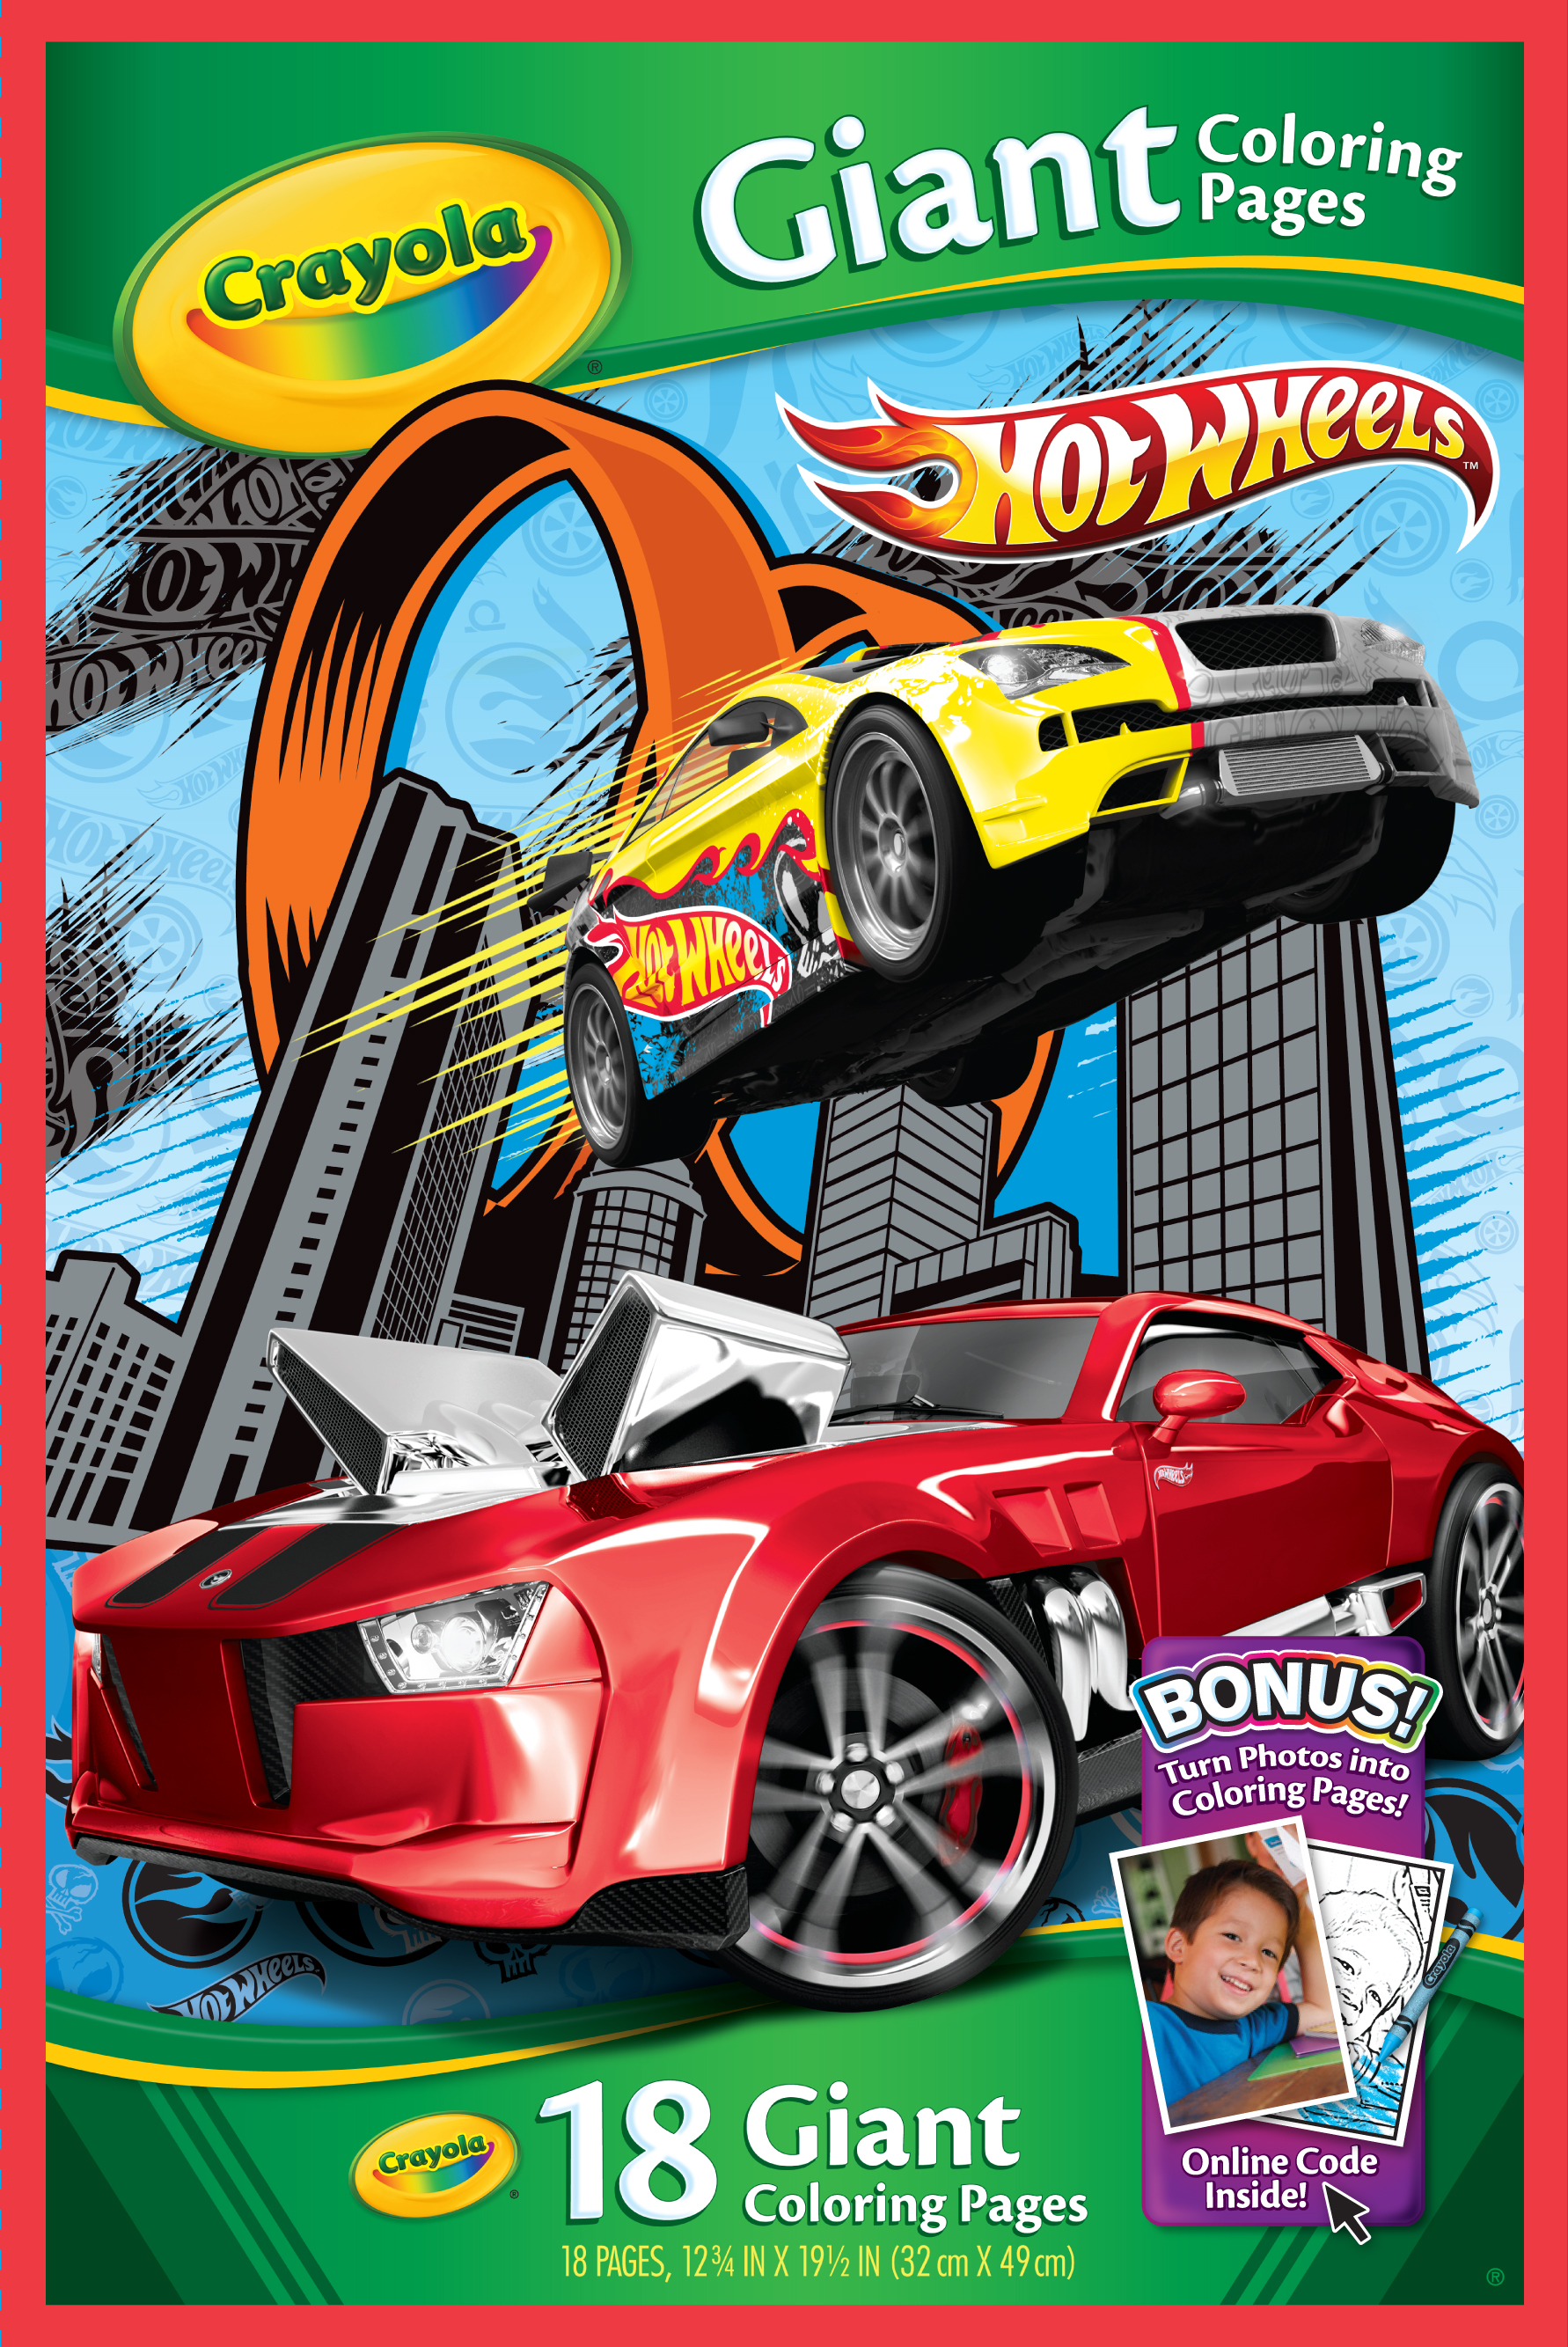 crayola giant coloring pages by matt riordan at coroflot com